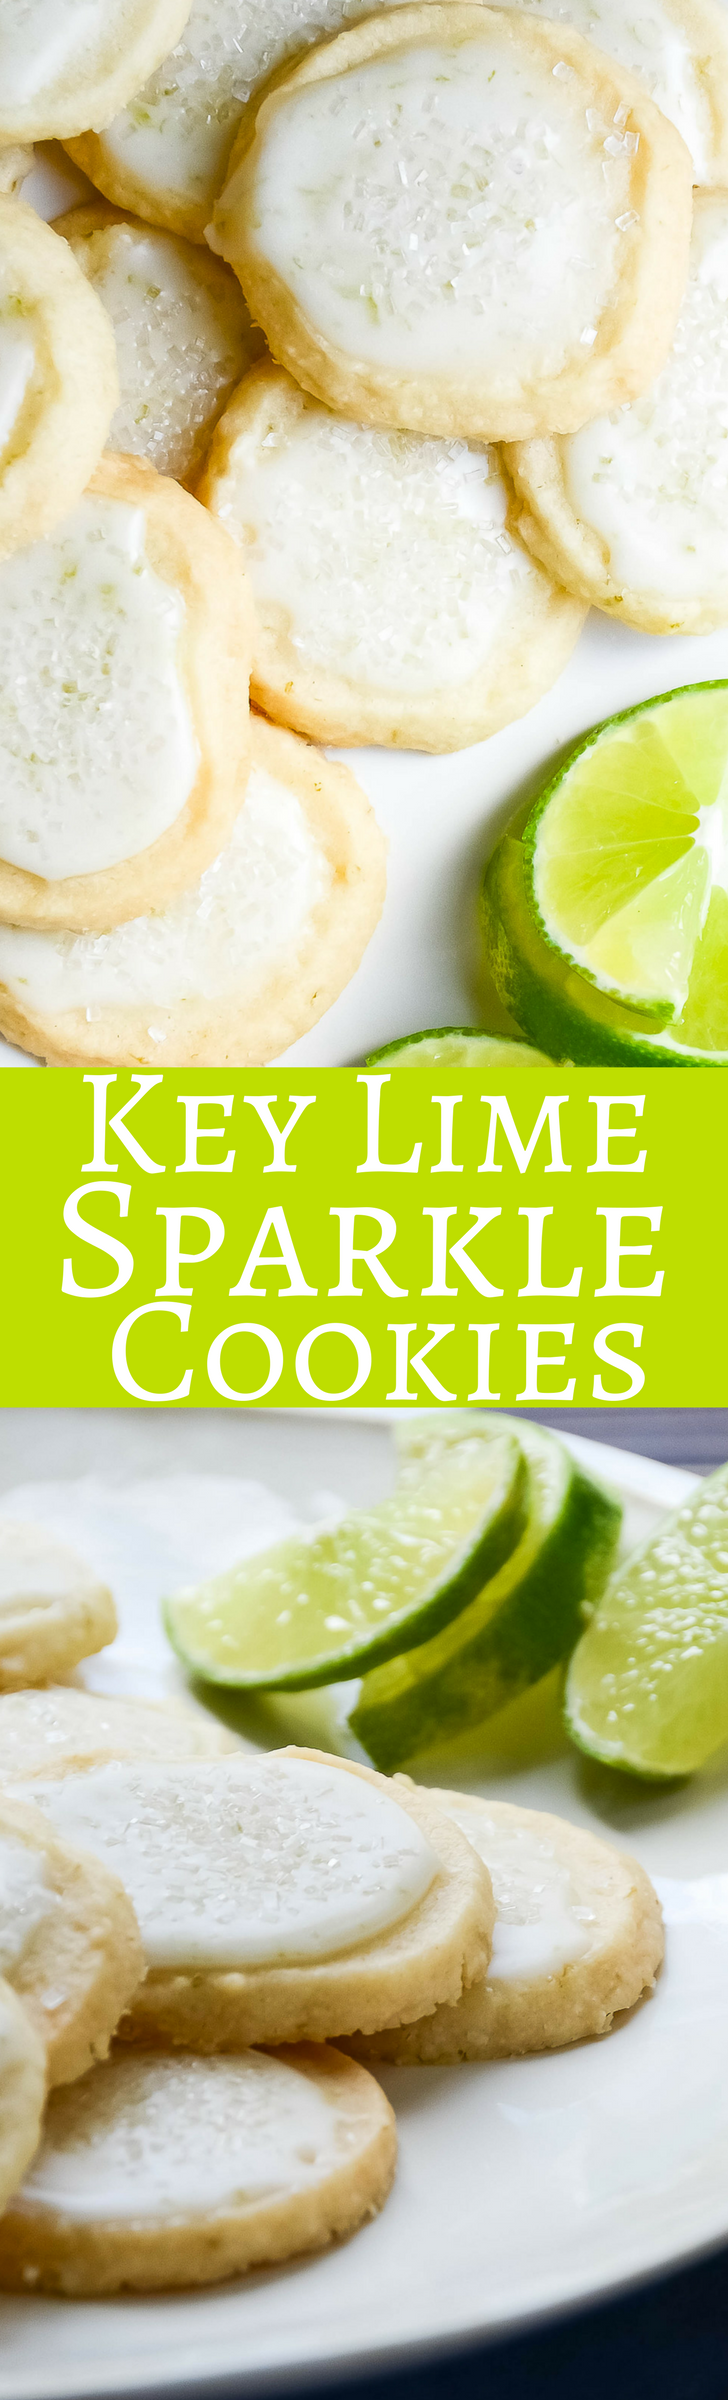 A light shortbread cookie with a hint of Key Lime and a sparkly glaze!  A taste of Florida Sunshine for the holidays or anytime!